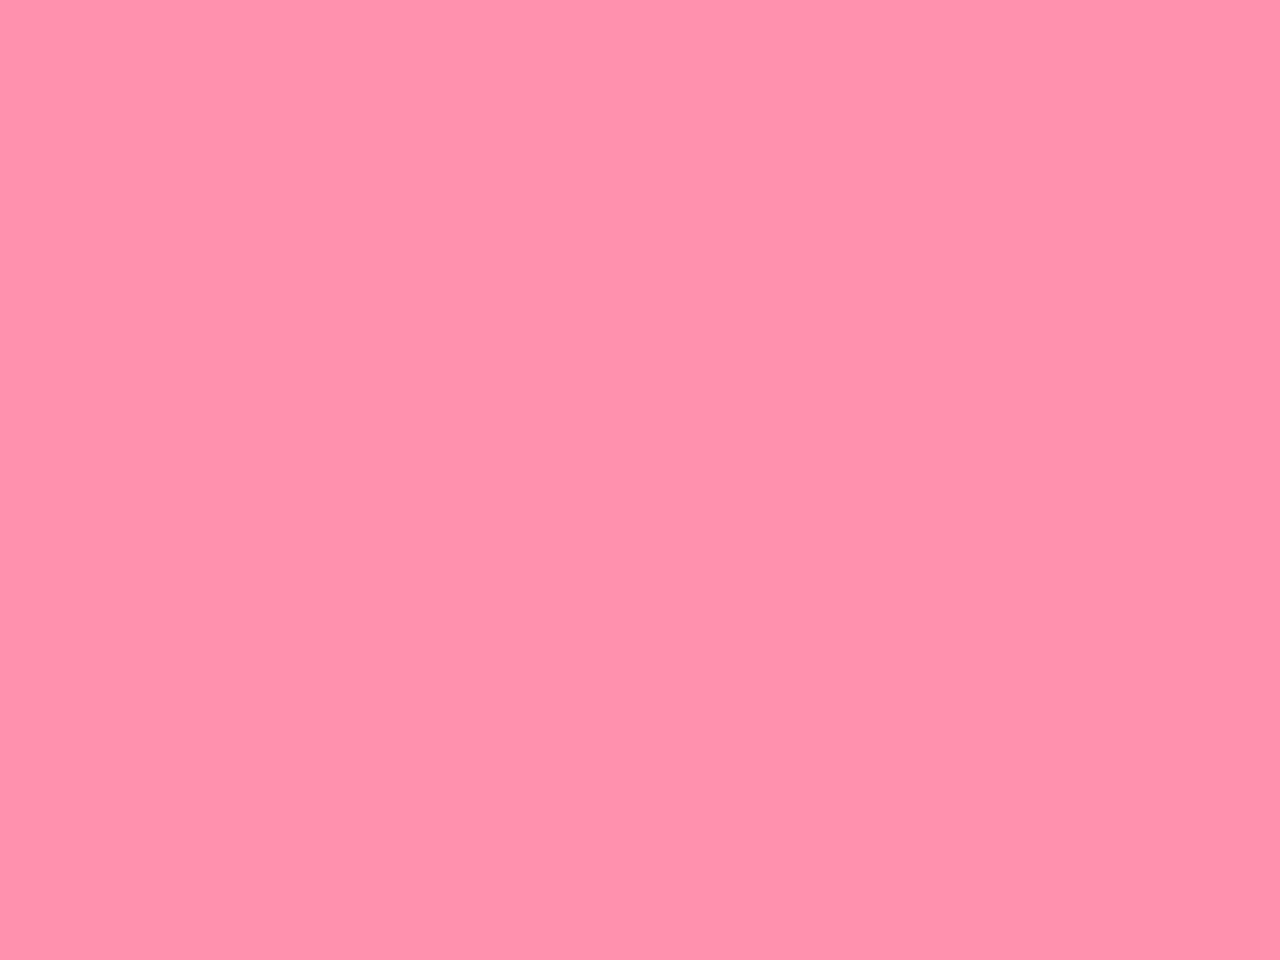 1280x960 Schauss Pink Solid Color Background